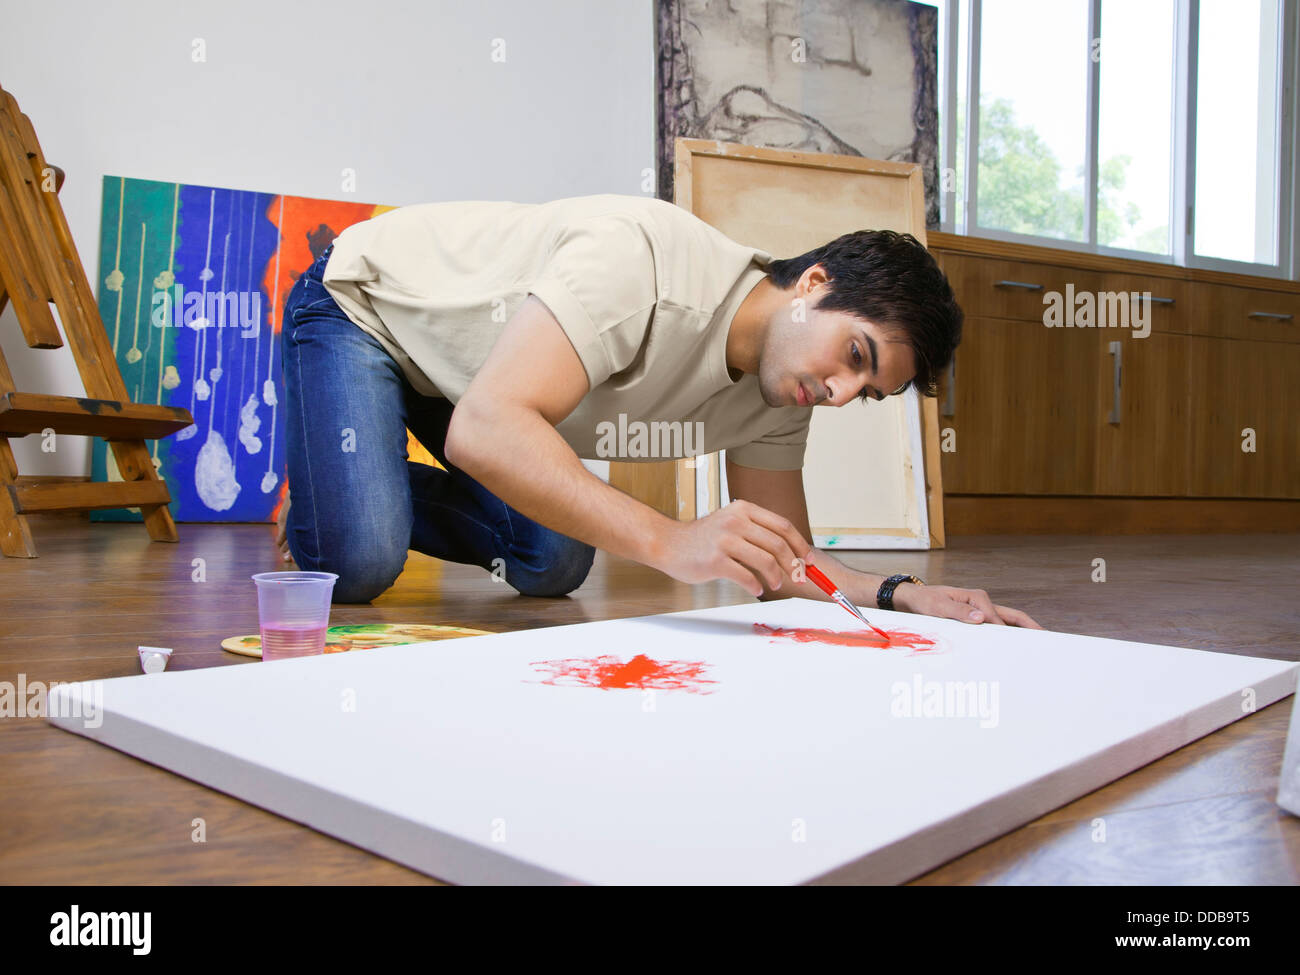 Young man painting on an artist's canvas at art studio - Stock Image